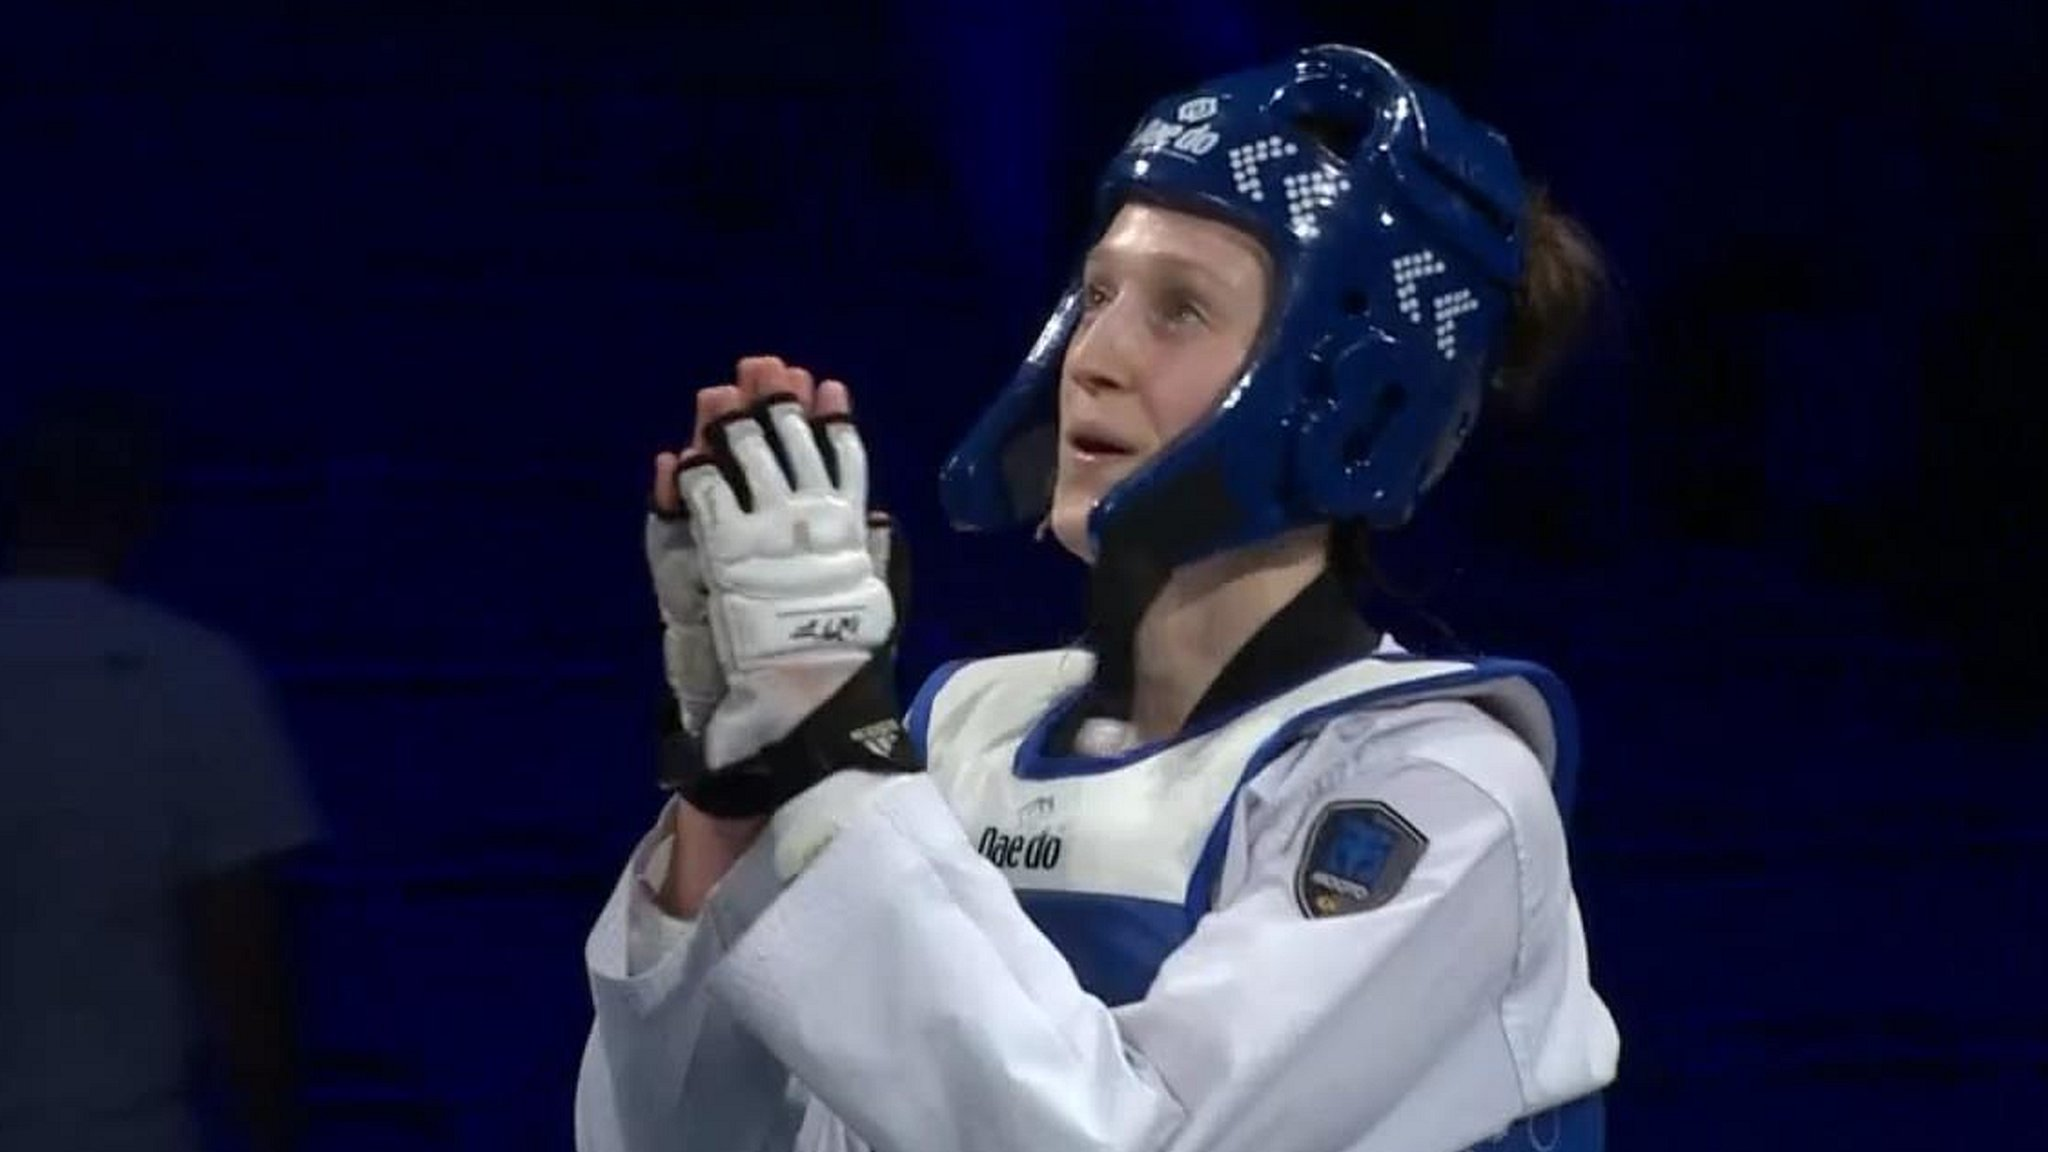 Lauren Williams wins Taekwondo Manchester Grand Prix gold for Great Britain